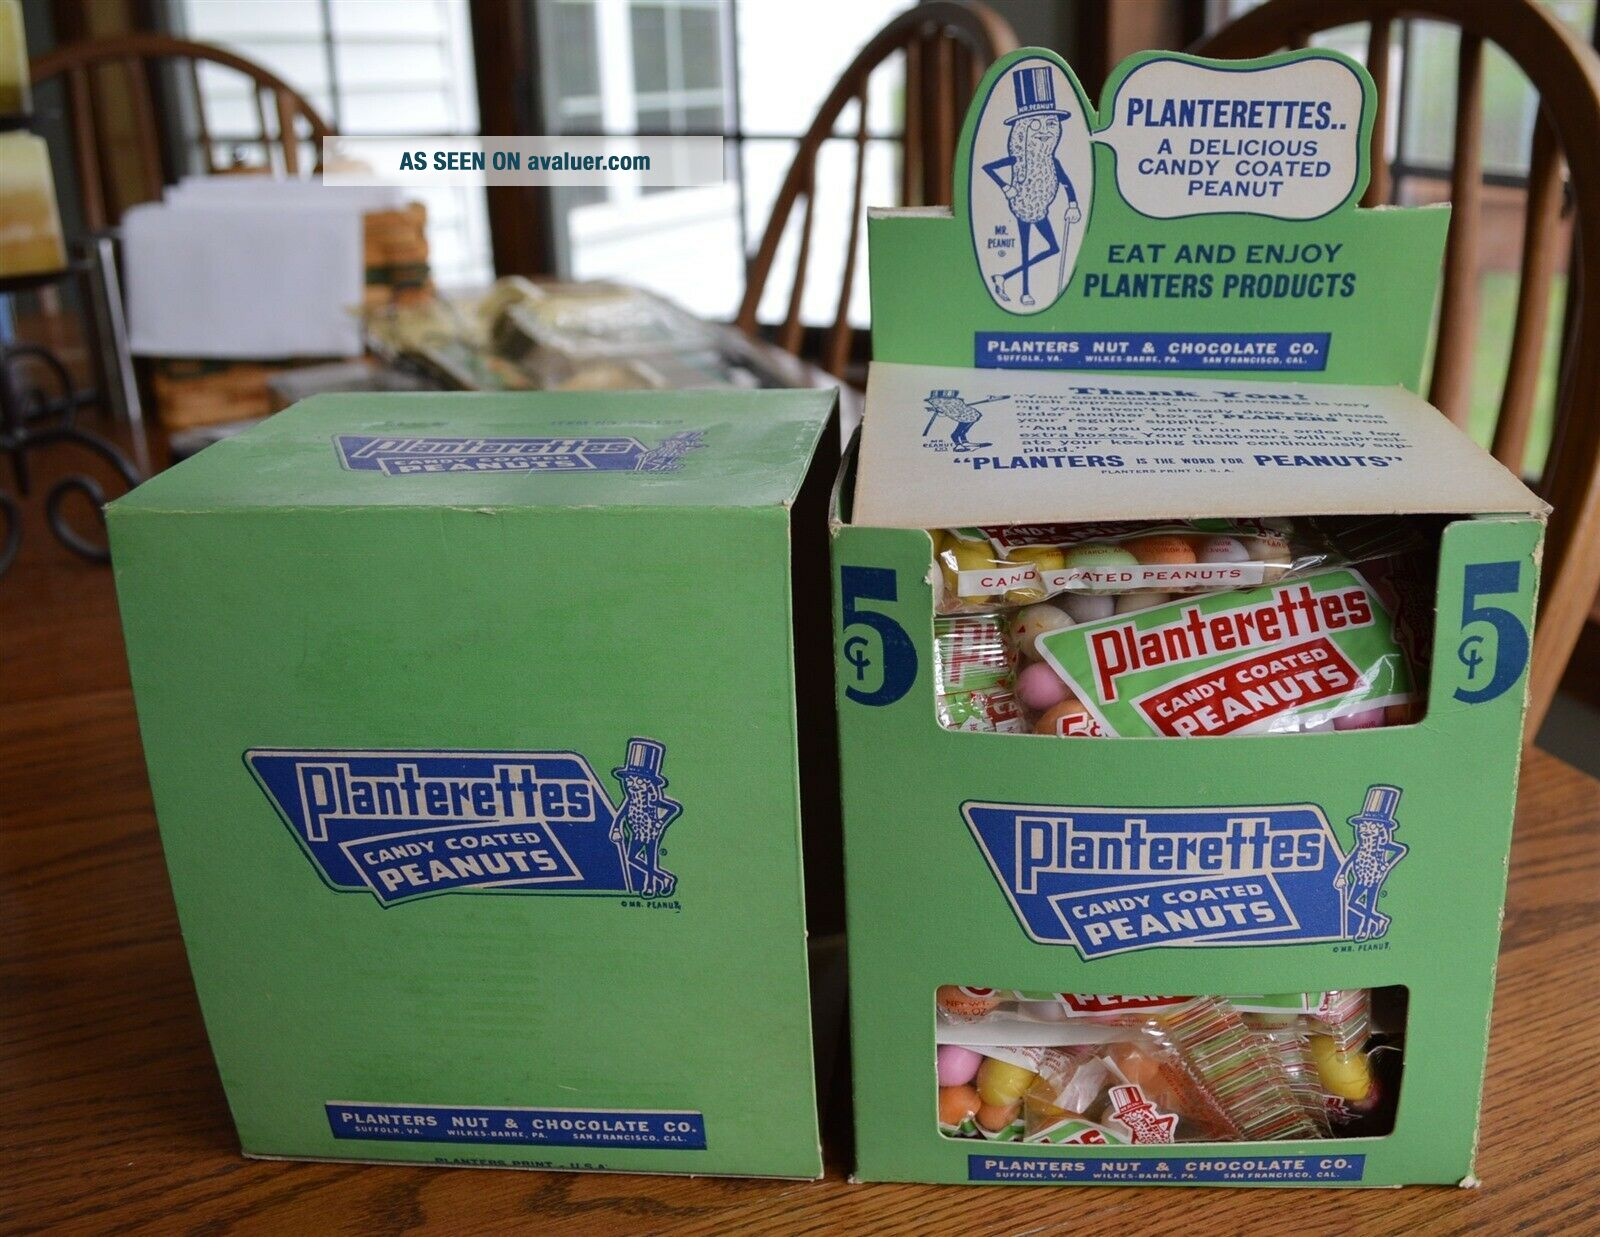 RARE Antique Planters Peanuts FULL Display Box 24 bags Candy Coated Peanuts